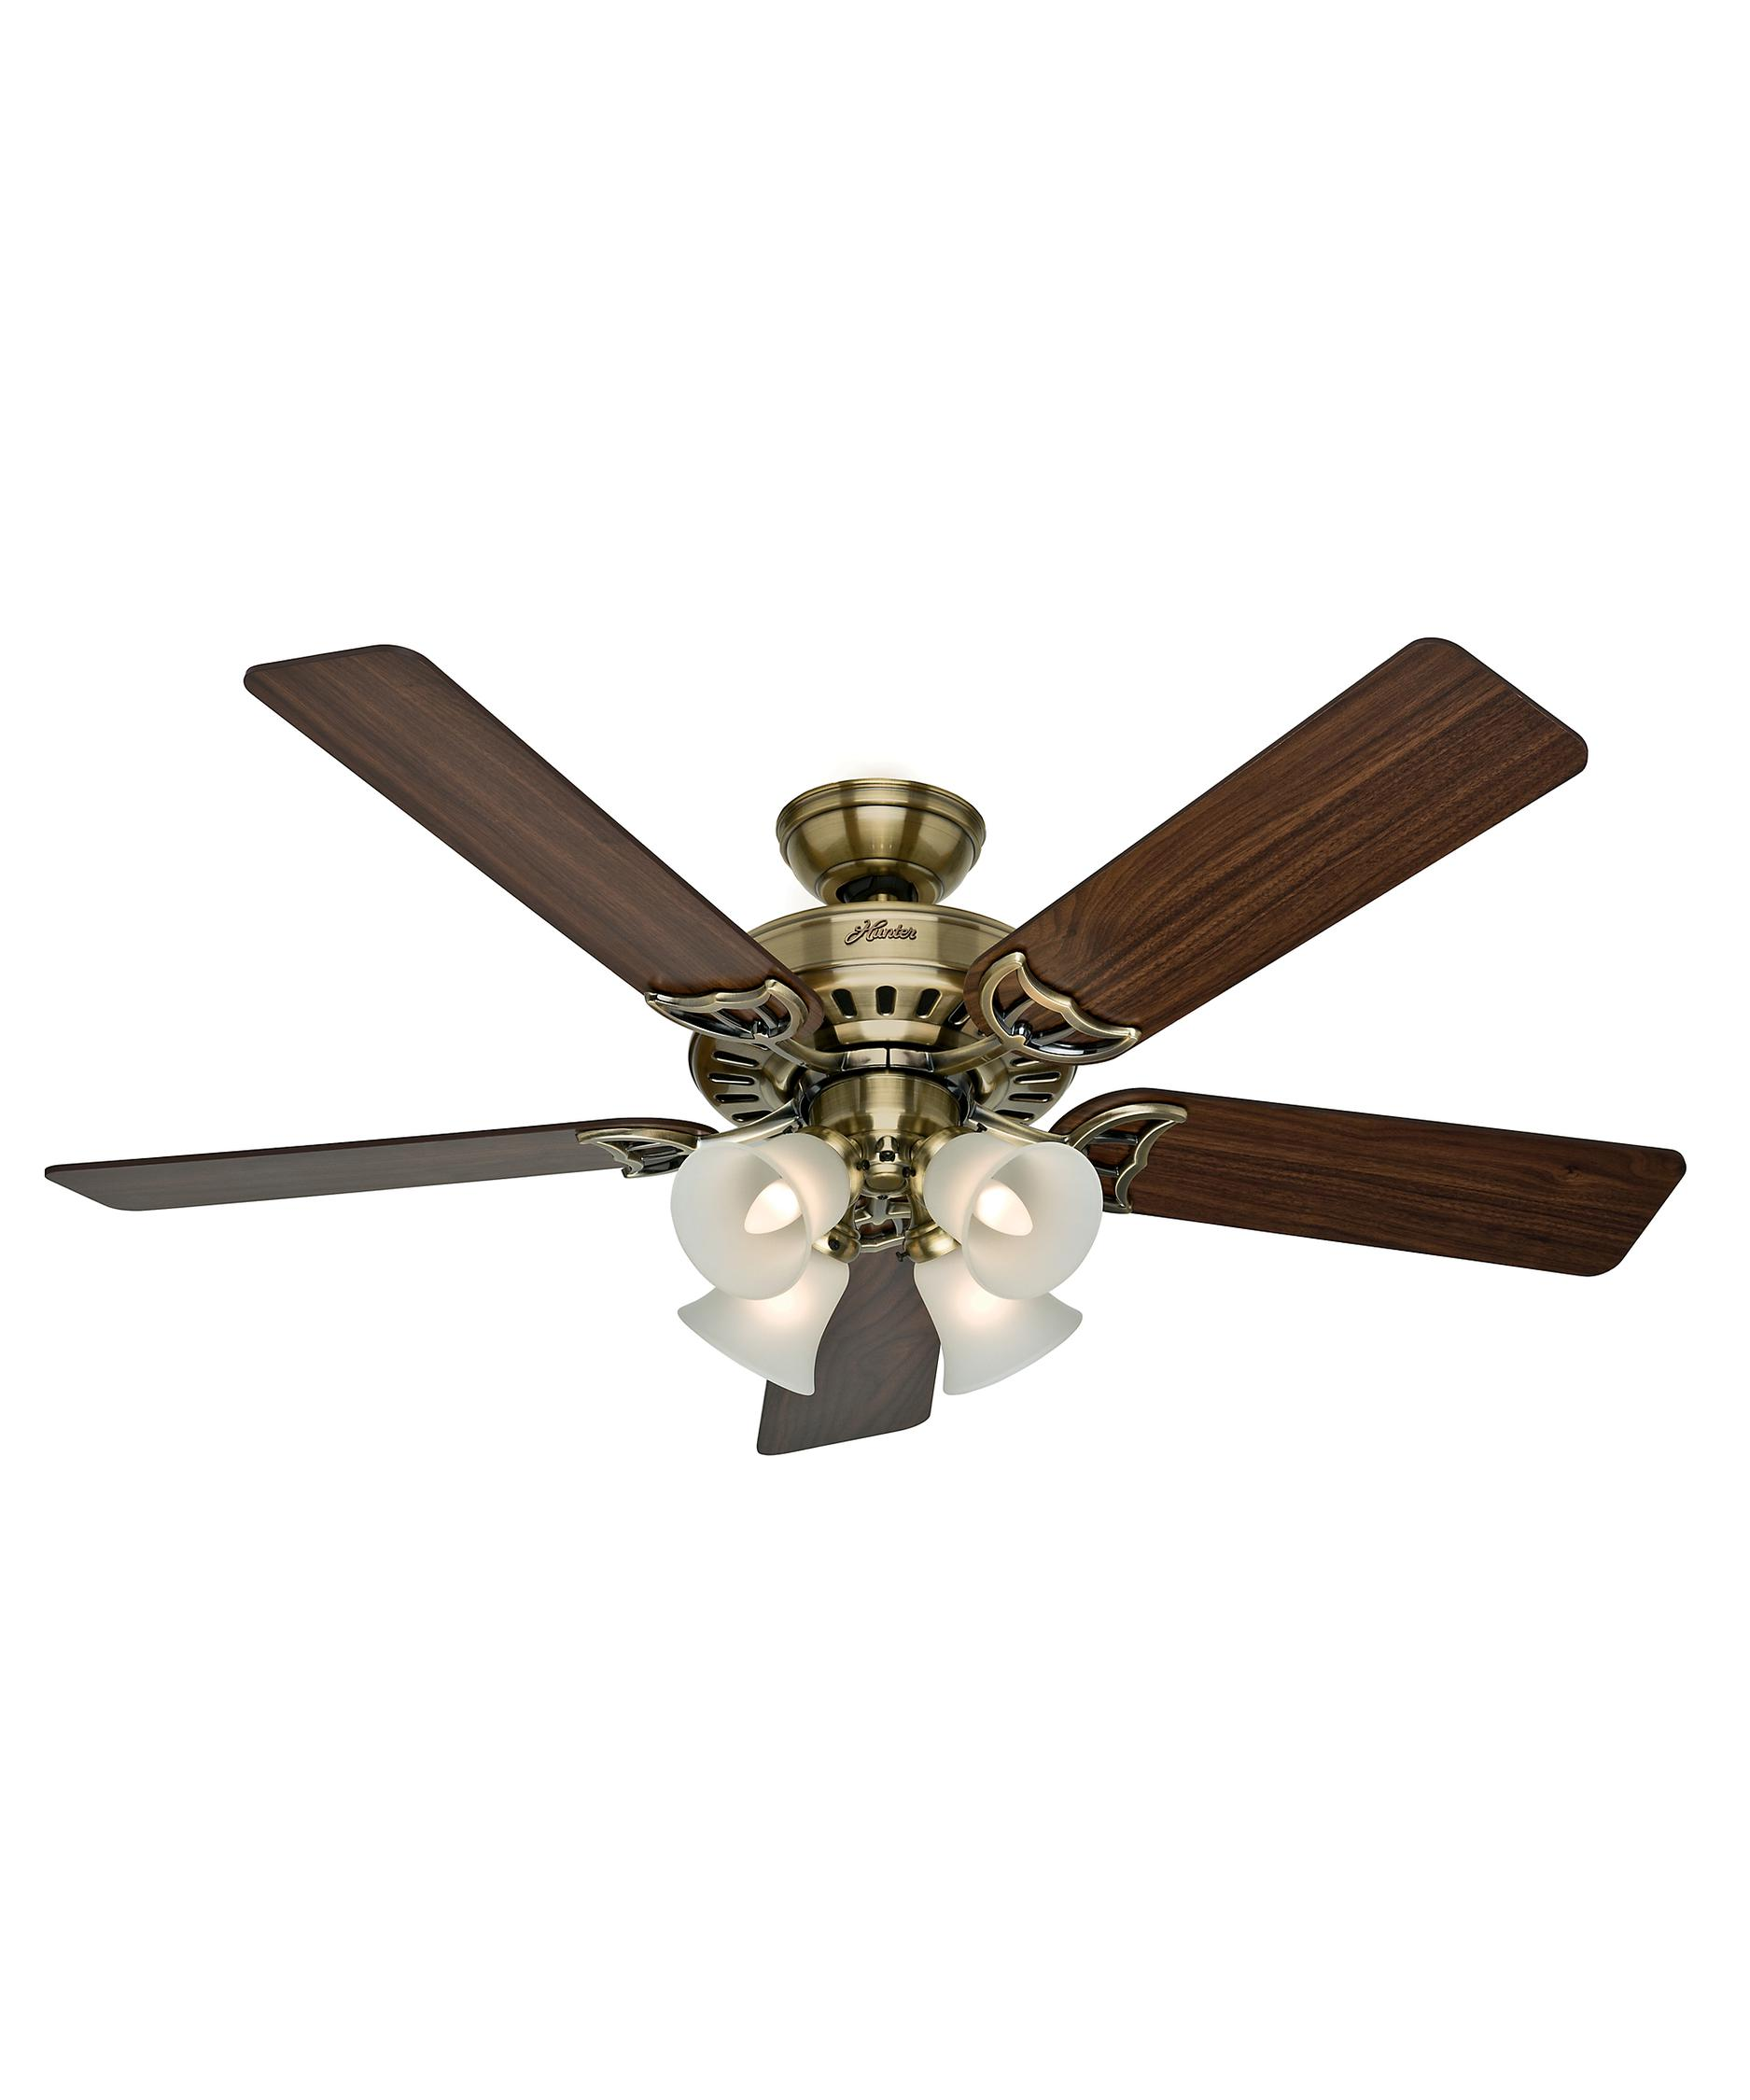 Hunter Ceiling Fans With Lights : Hunter fan studio series inch ceiling with